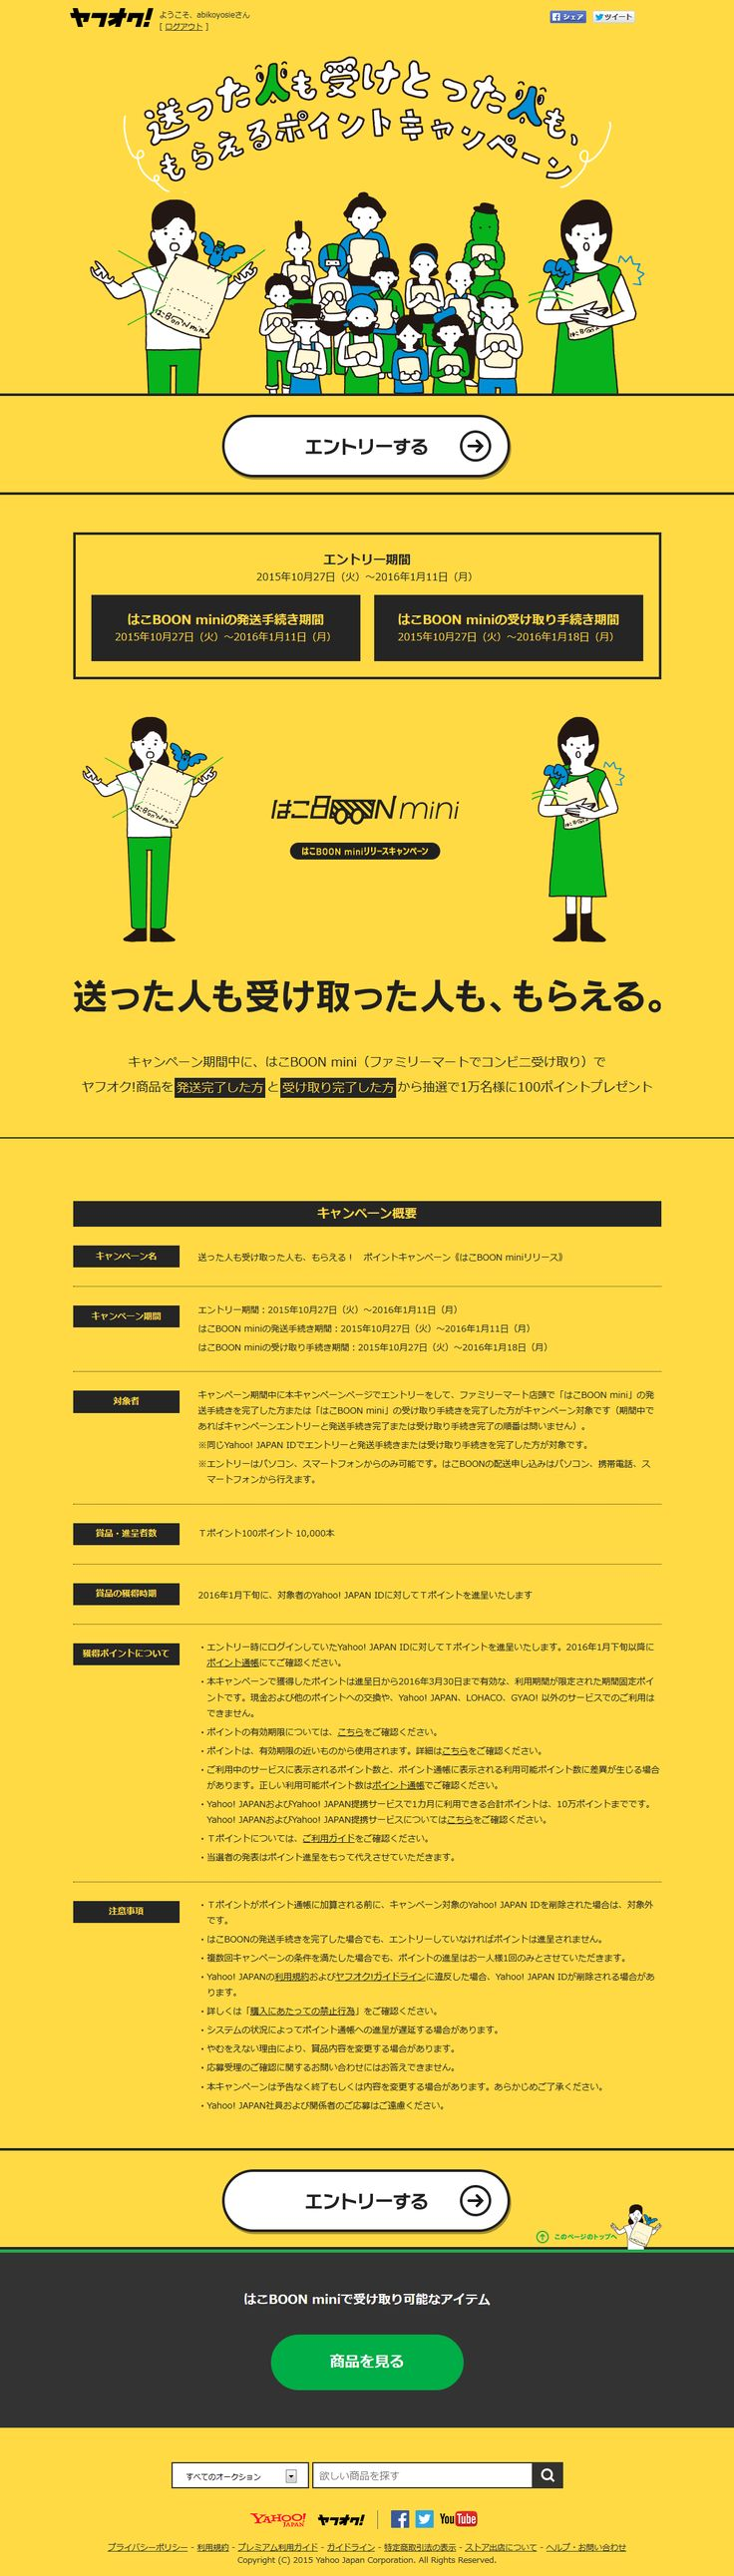 http://topic.auctions.yahoo.co.jp/promo/hacoboonmini/point/